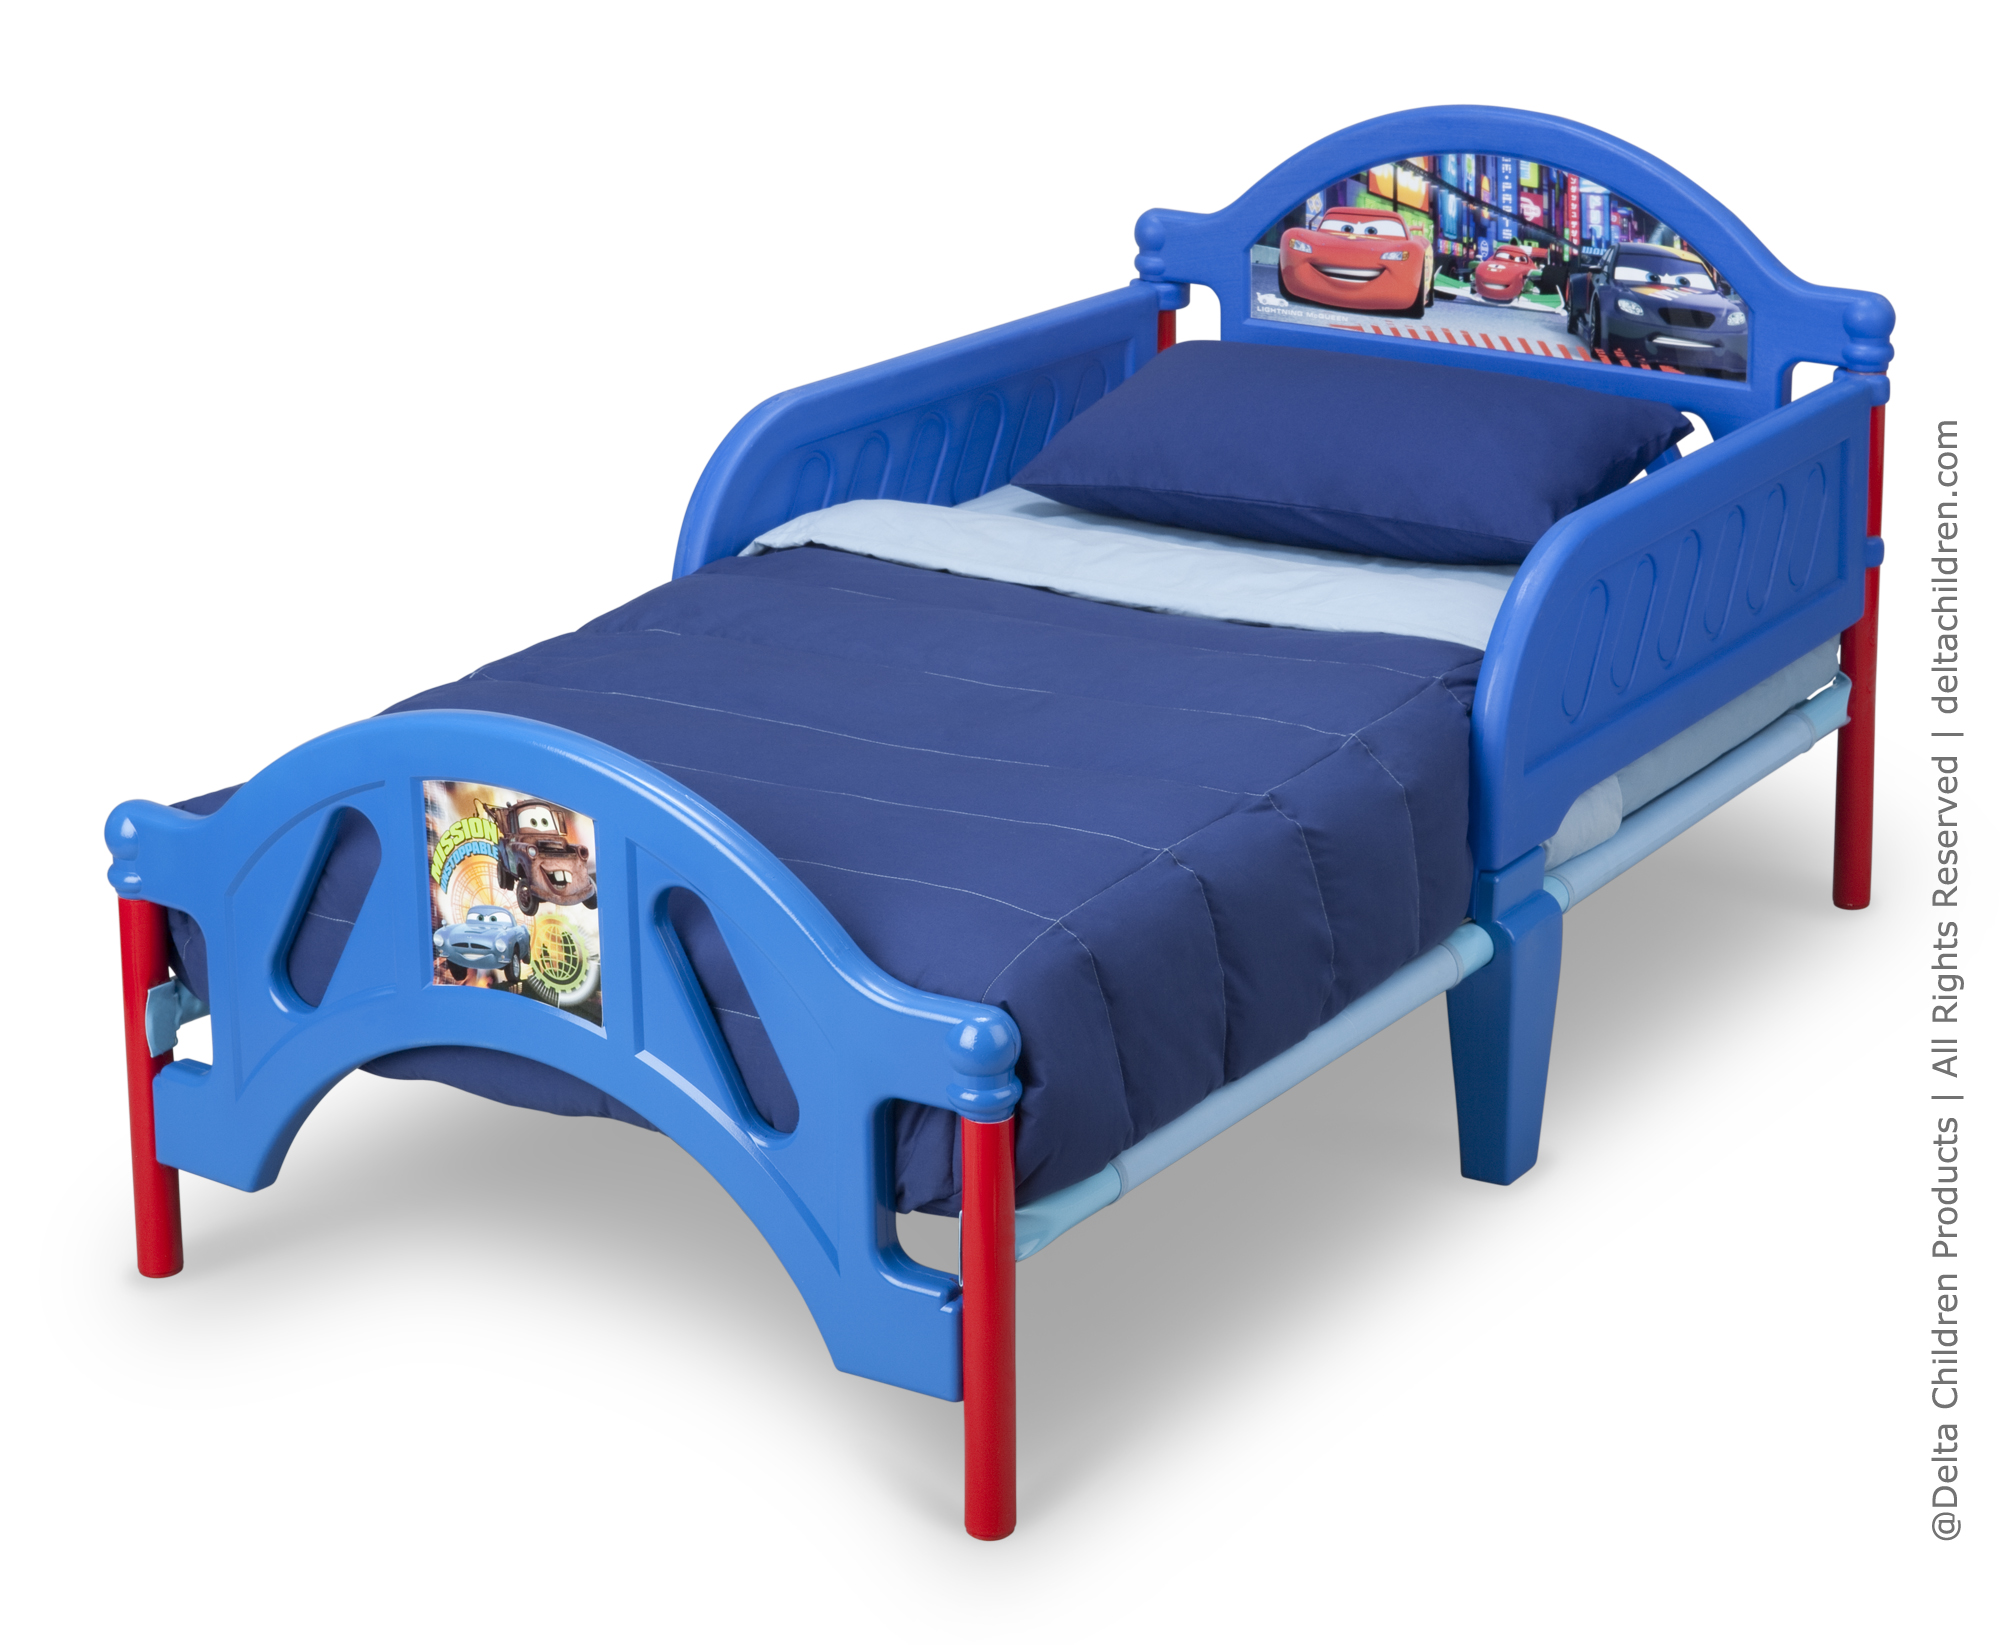 Delta Cars Toddler Bed Instructions Hawk Haven